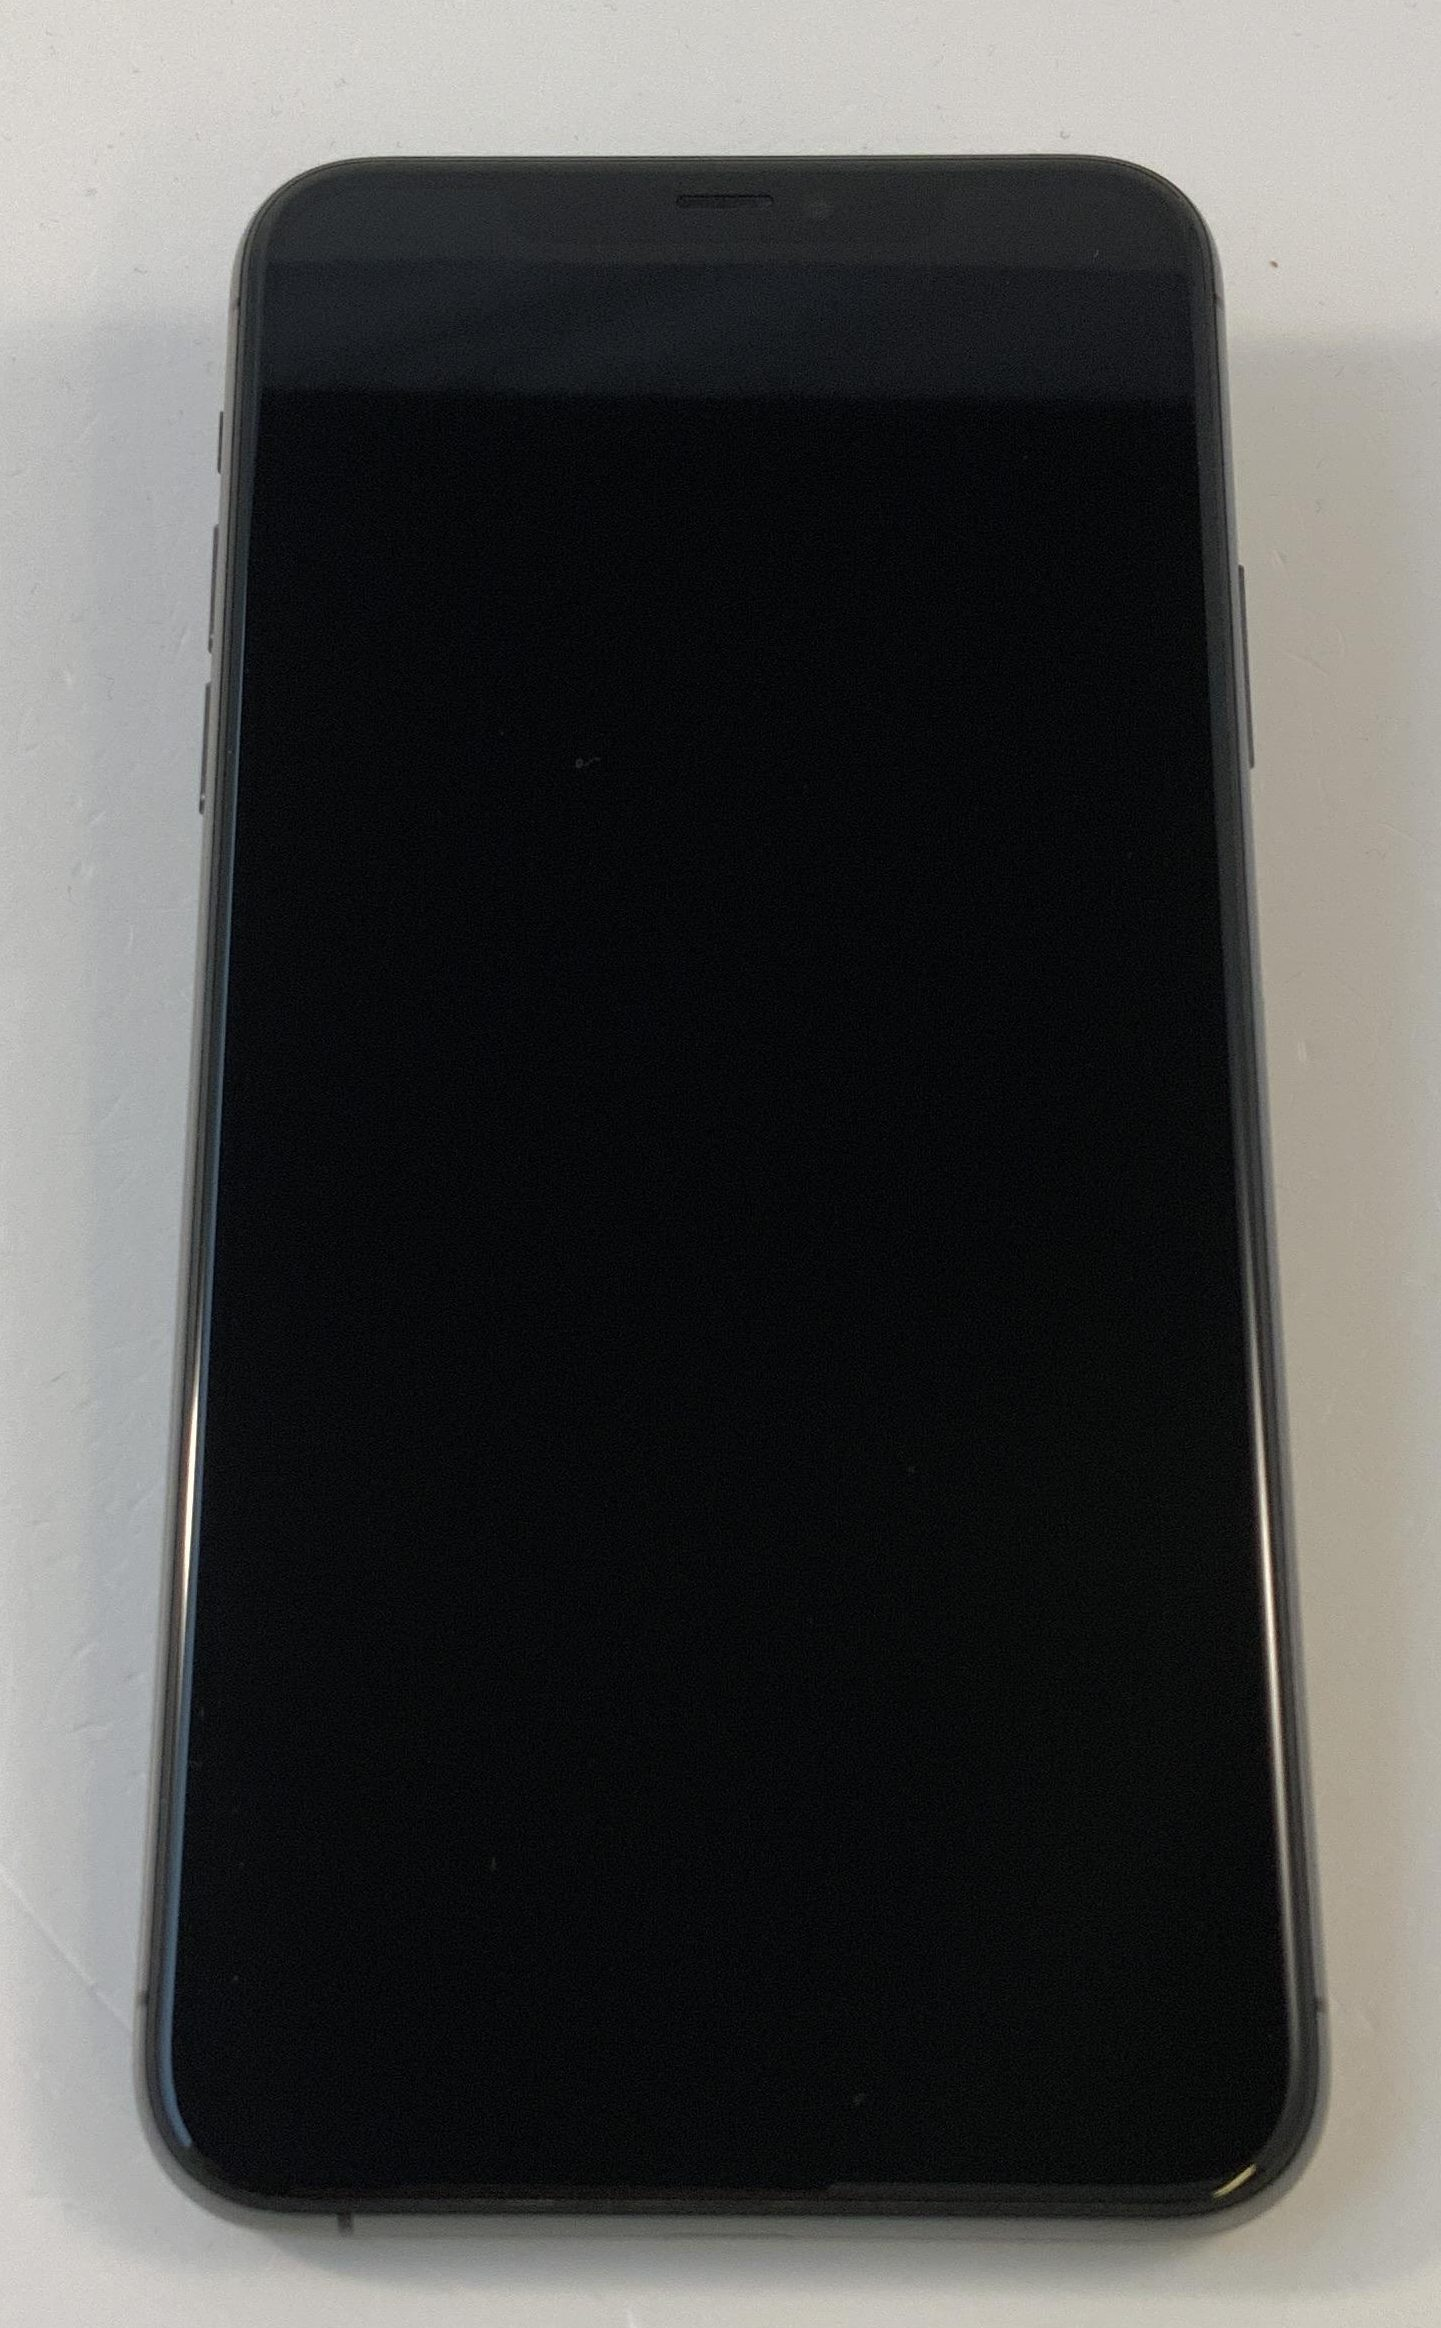 iPhone 11 Pro Max 256GB, 256GB, Space Gray, image 1